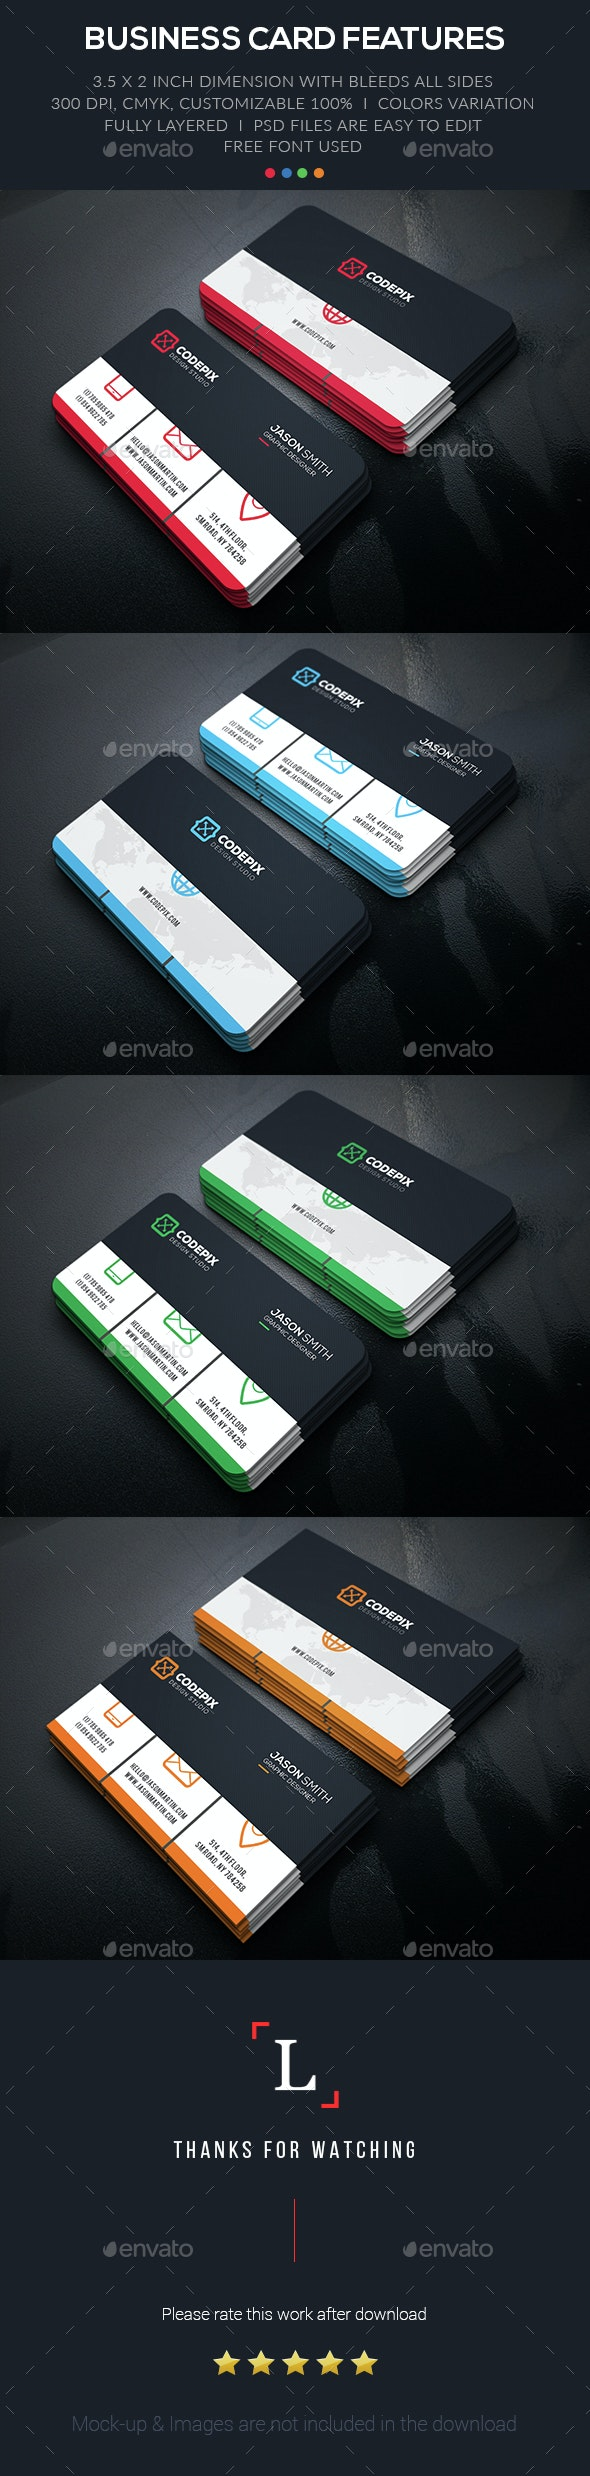 Simple Corporate Business Card - Business Cards Print Templates